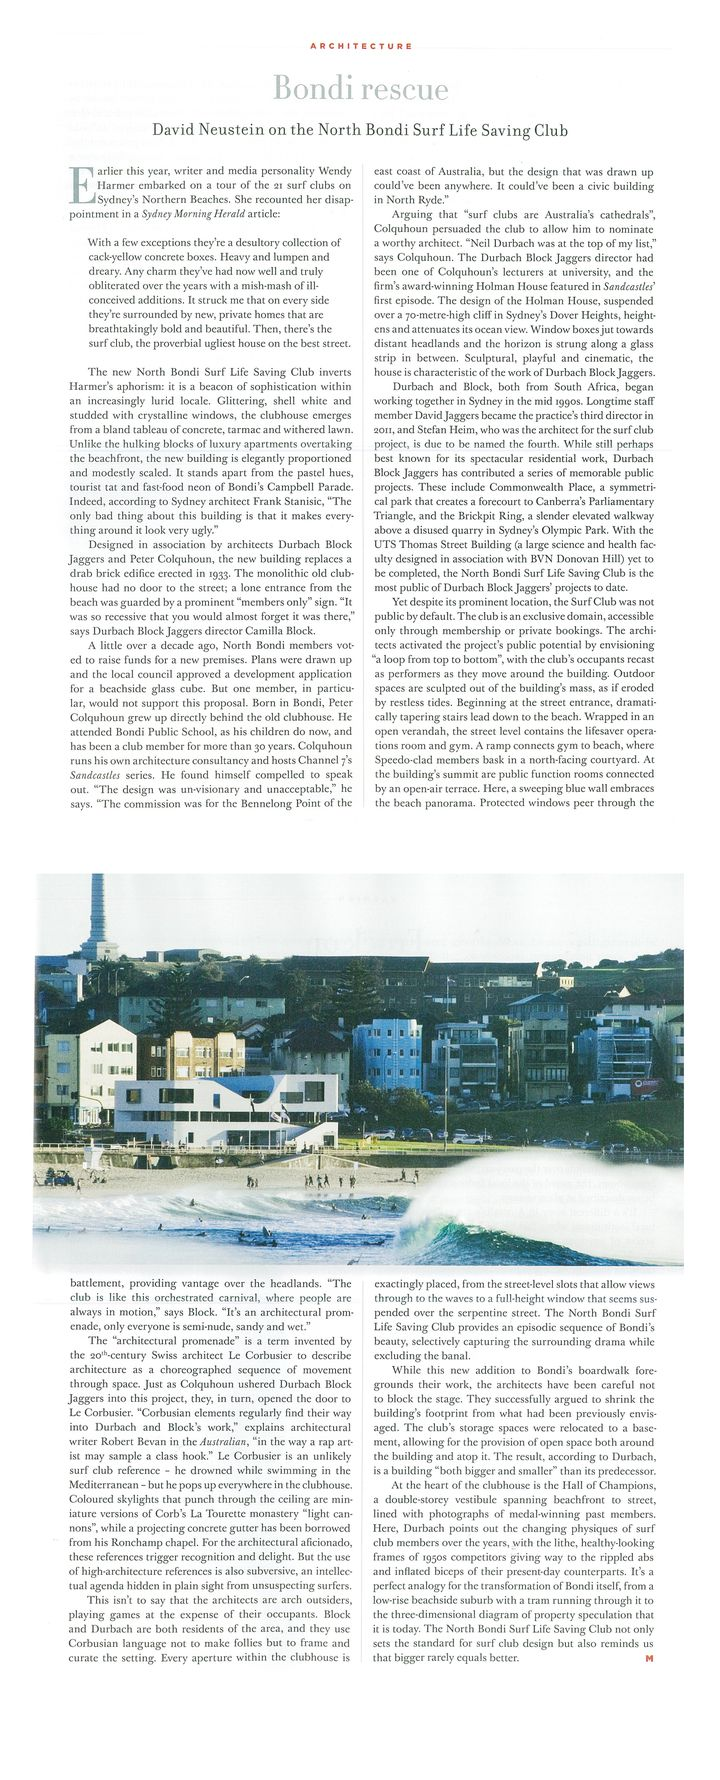 The Monthly Magazine Profiles DBJ and NBSLSC